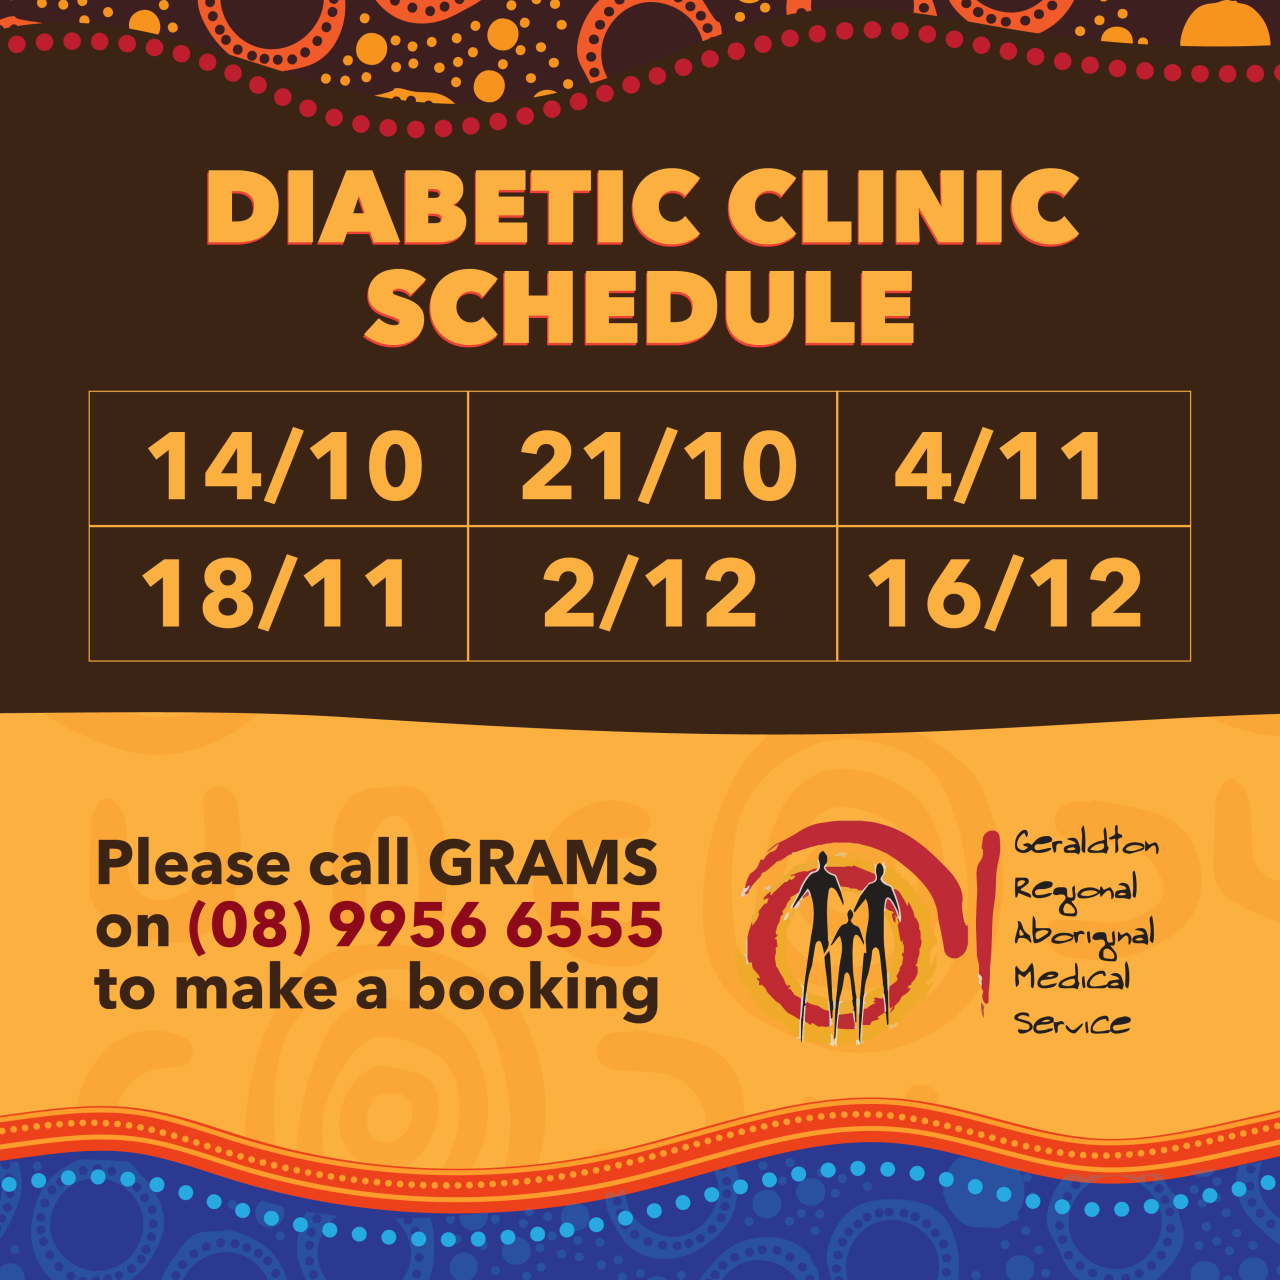 Diabetic Clinic GRAMS